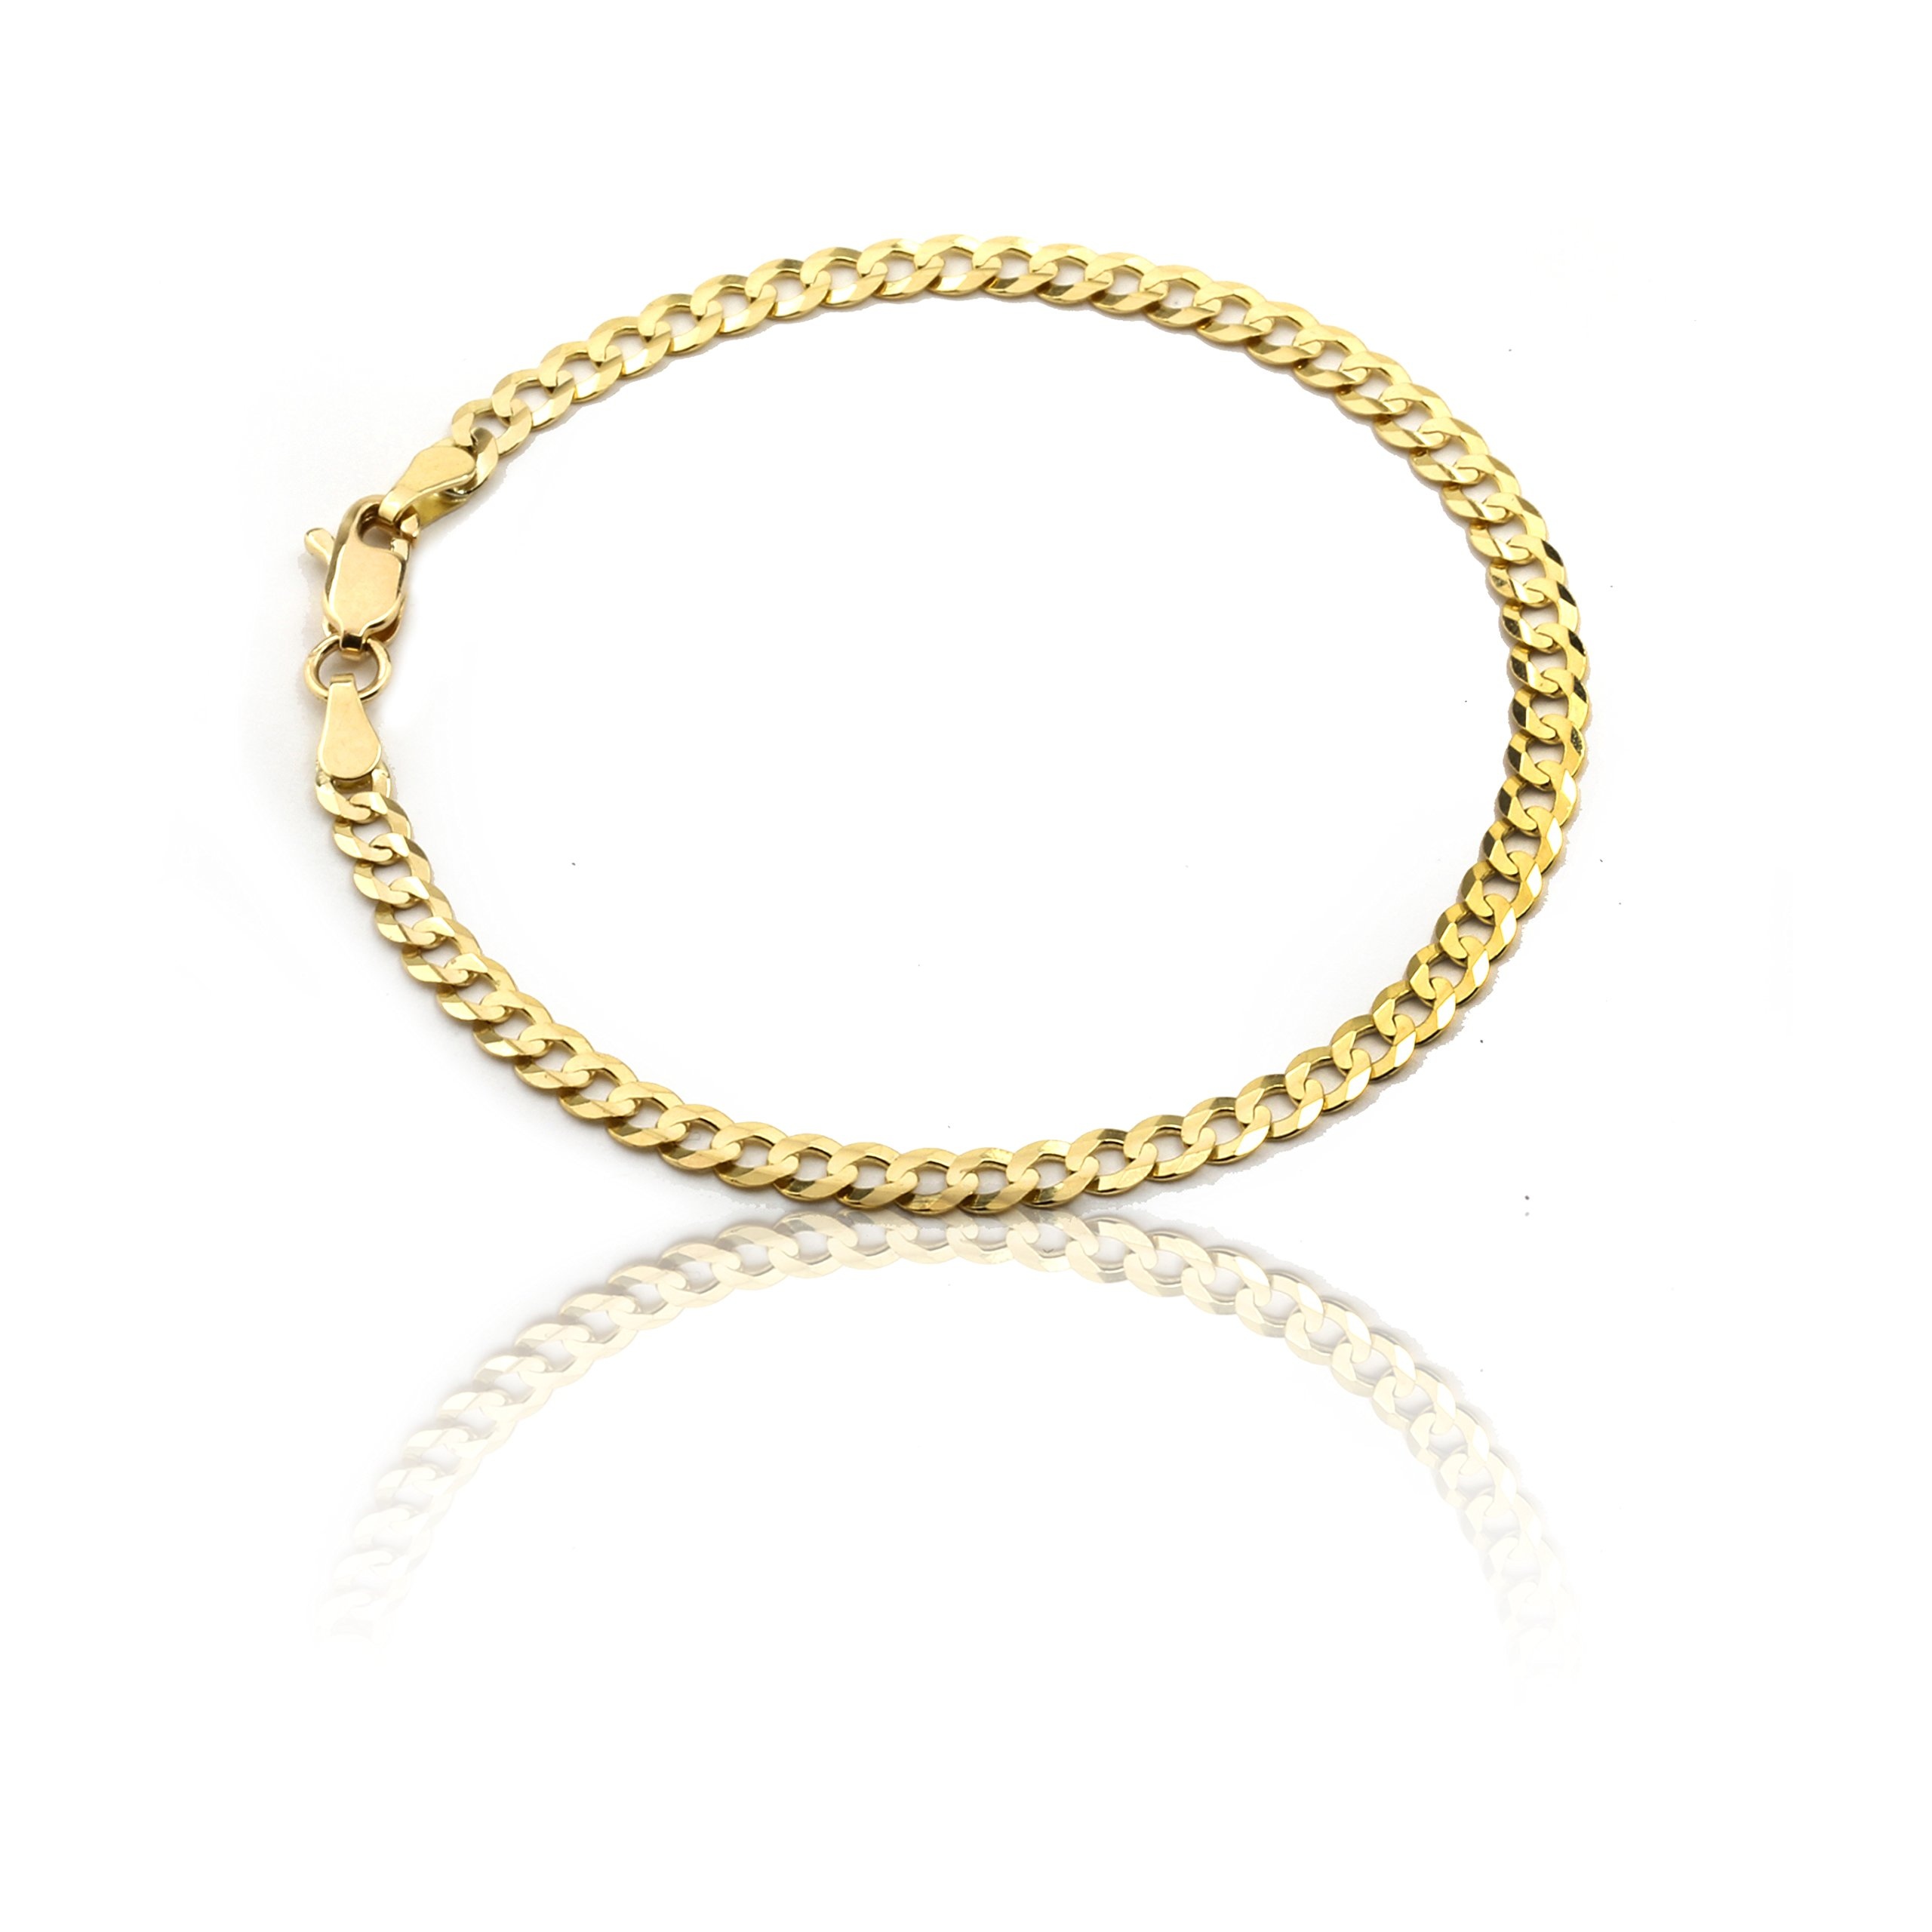 10 Inch 10k Yellow Gold Curb Cuban Chain Ankle Bracelet Anklet for Women and Girls, 0.16 Inch (4mm) by SL Gold Imports (Image #1)